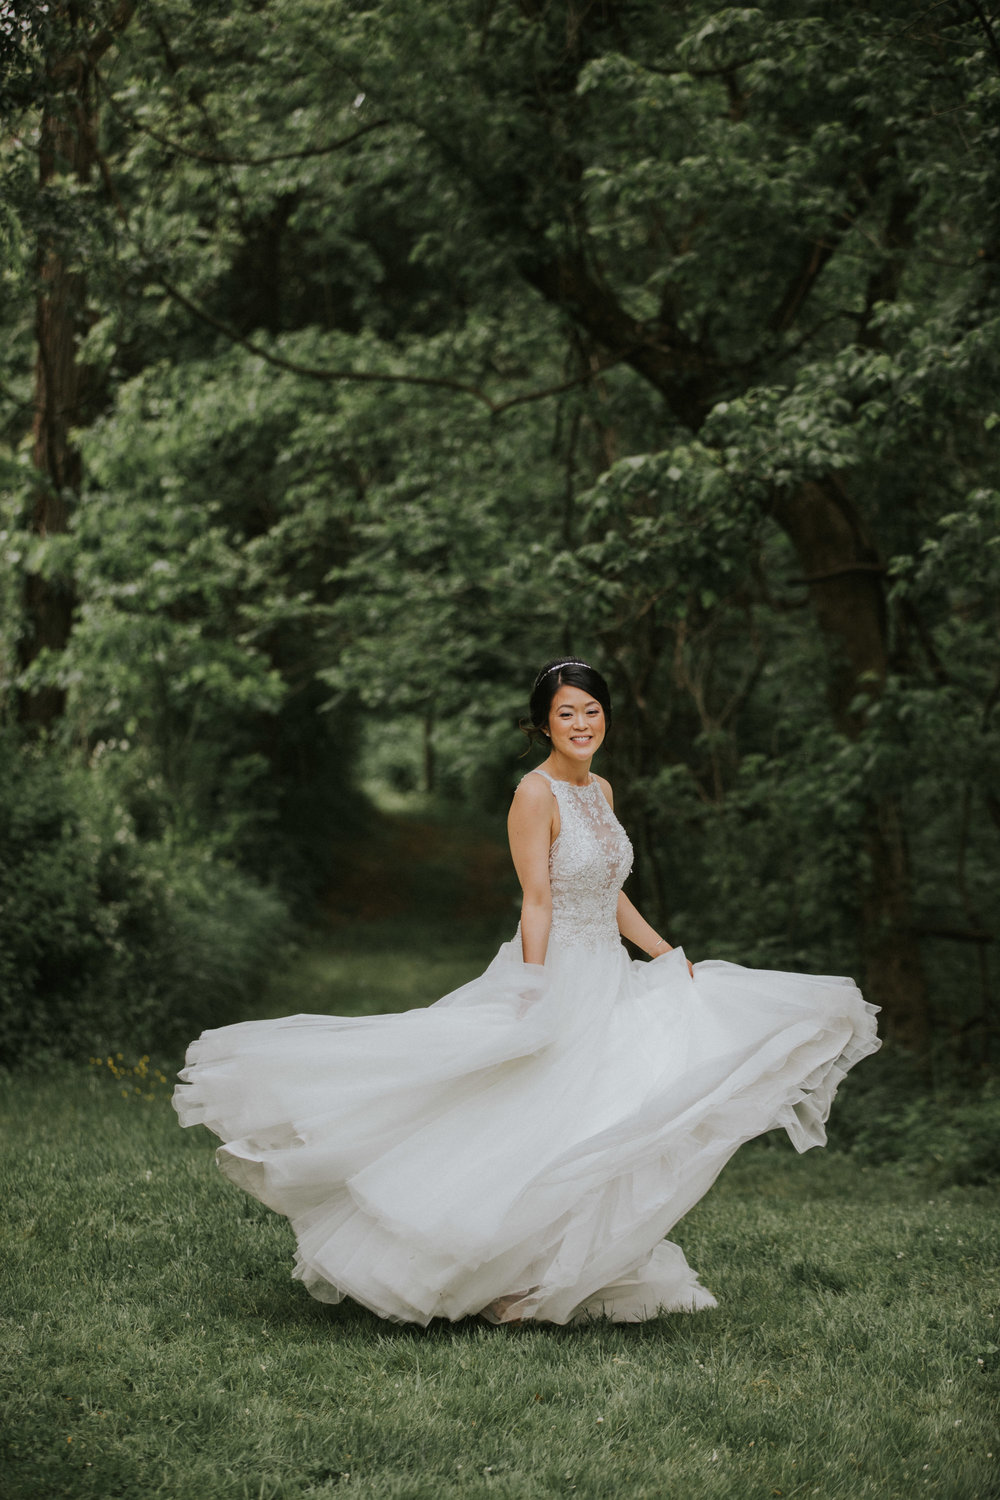 Wedding Monmouth County Walnford Park Allentown NJ Rustic Nature 43.jpg